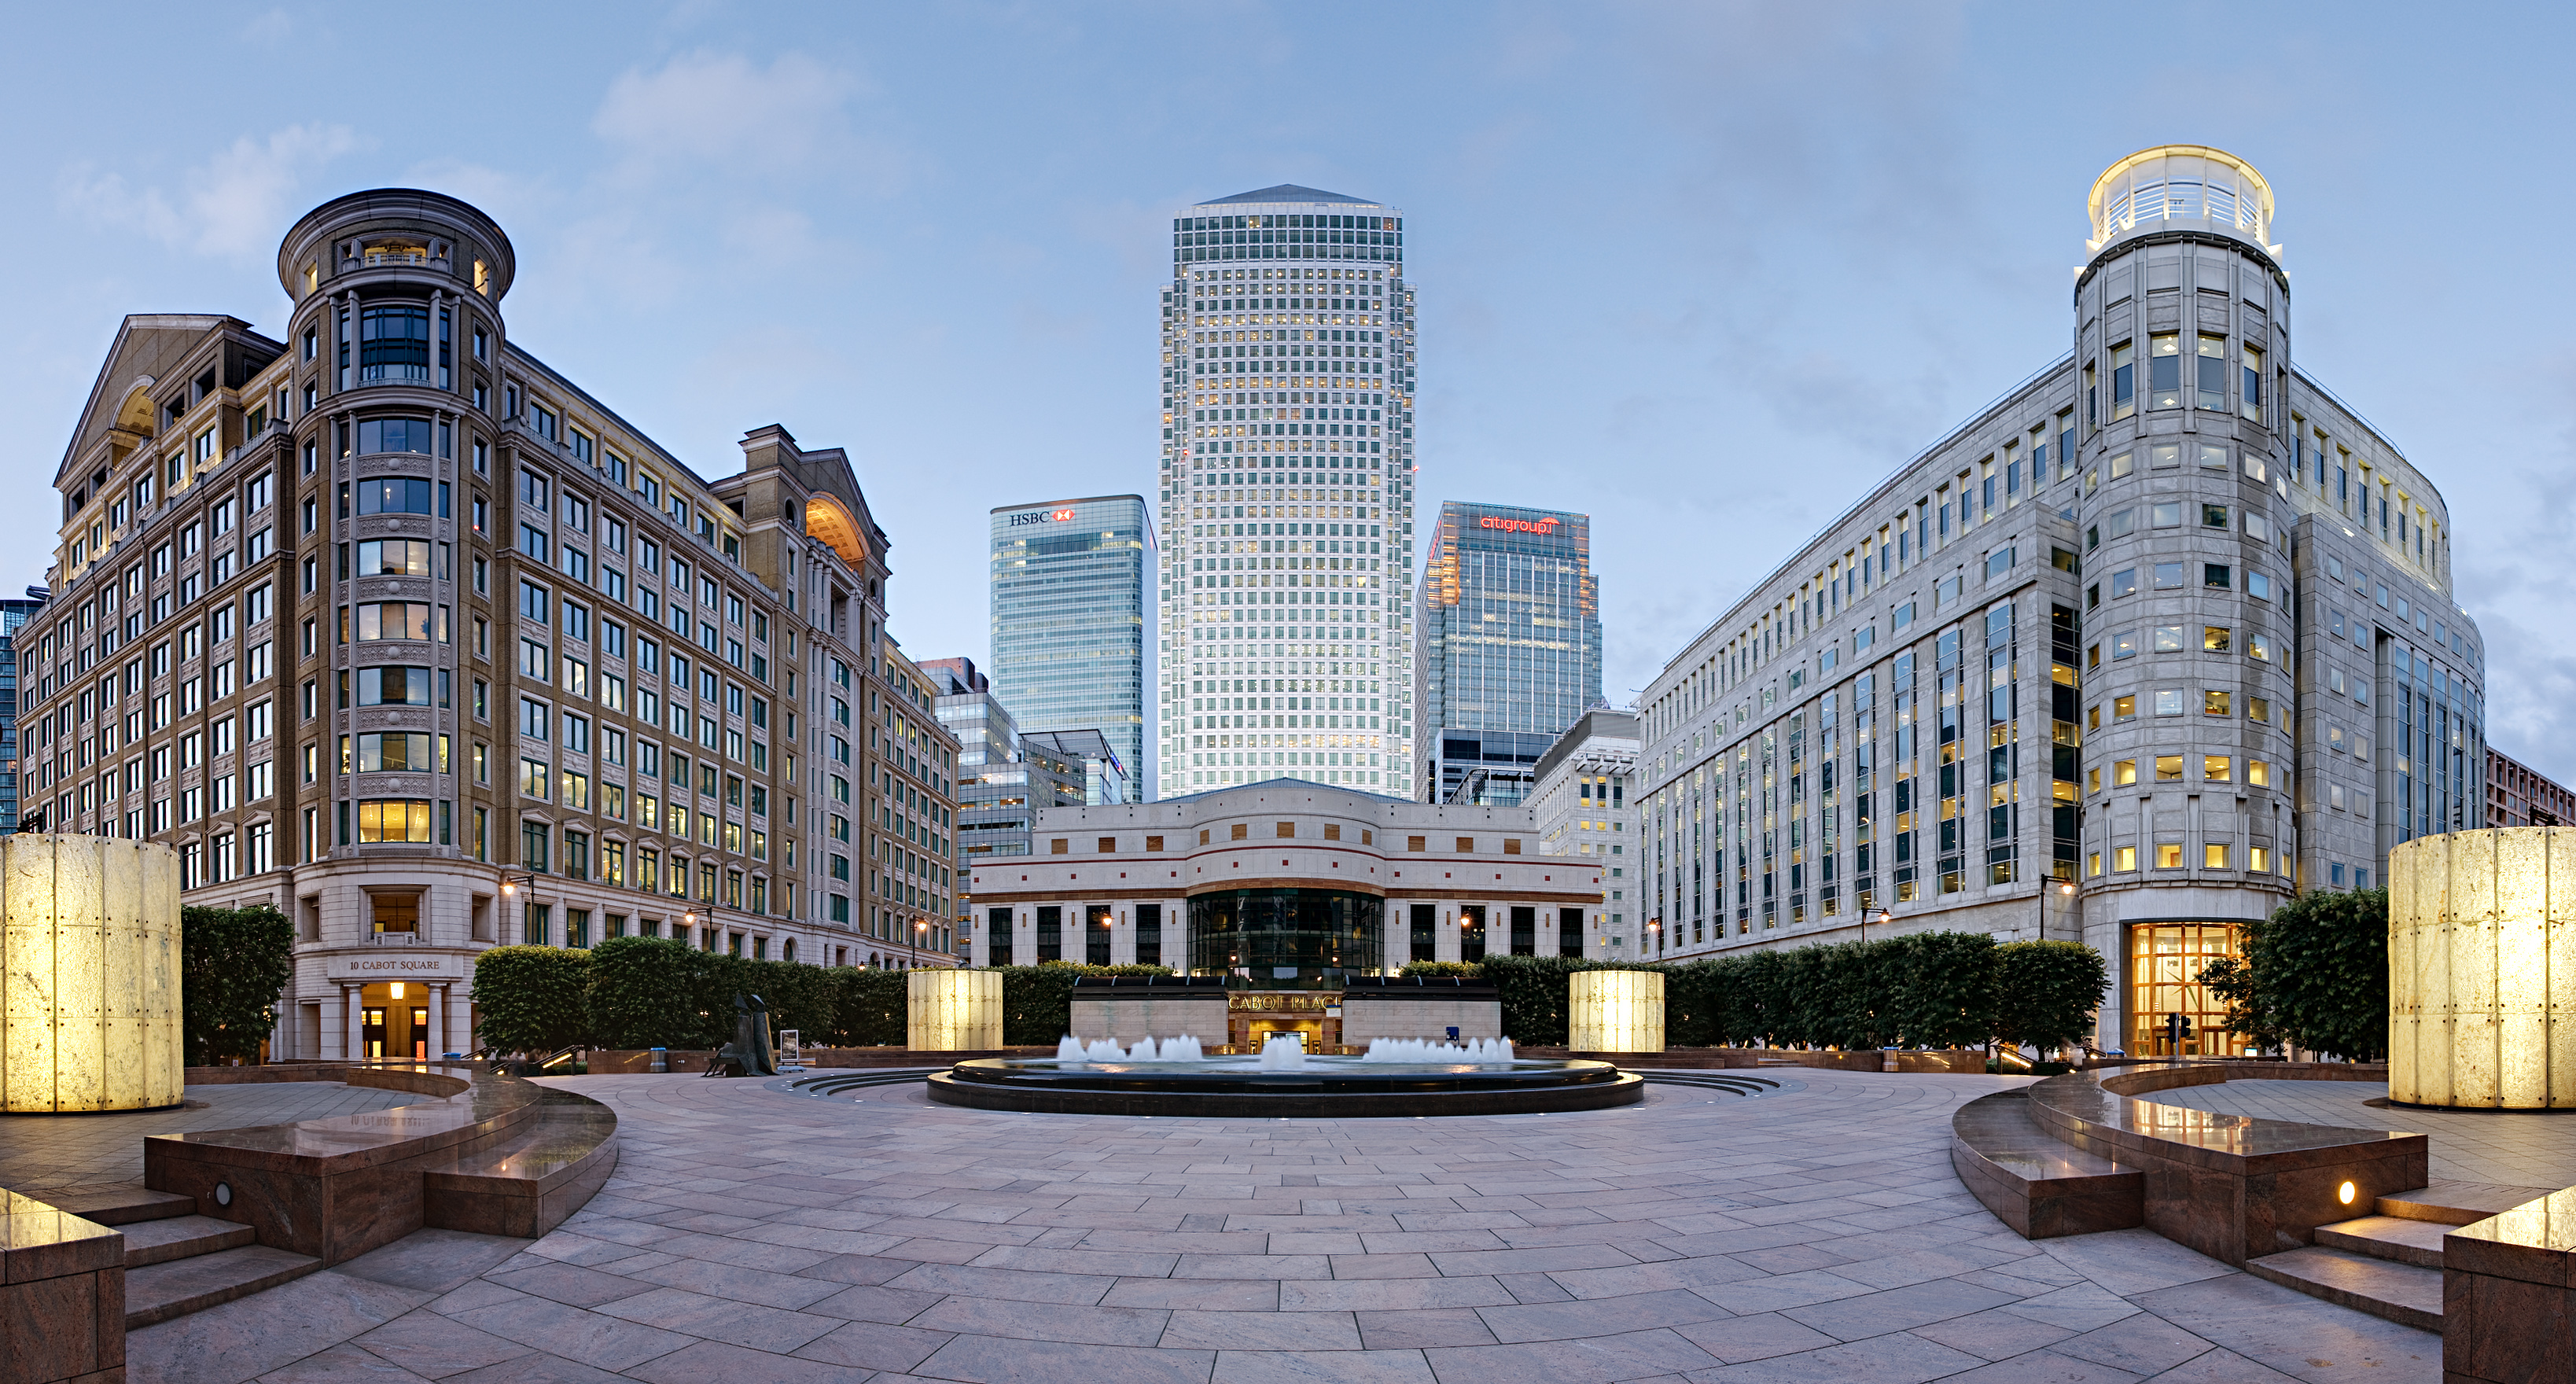 Canary wharf in london as a naked tourist destination 5